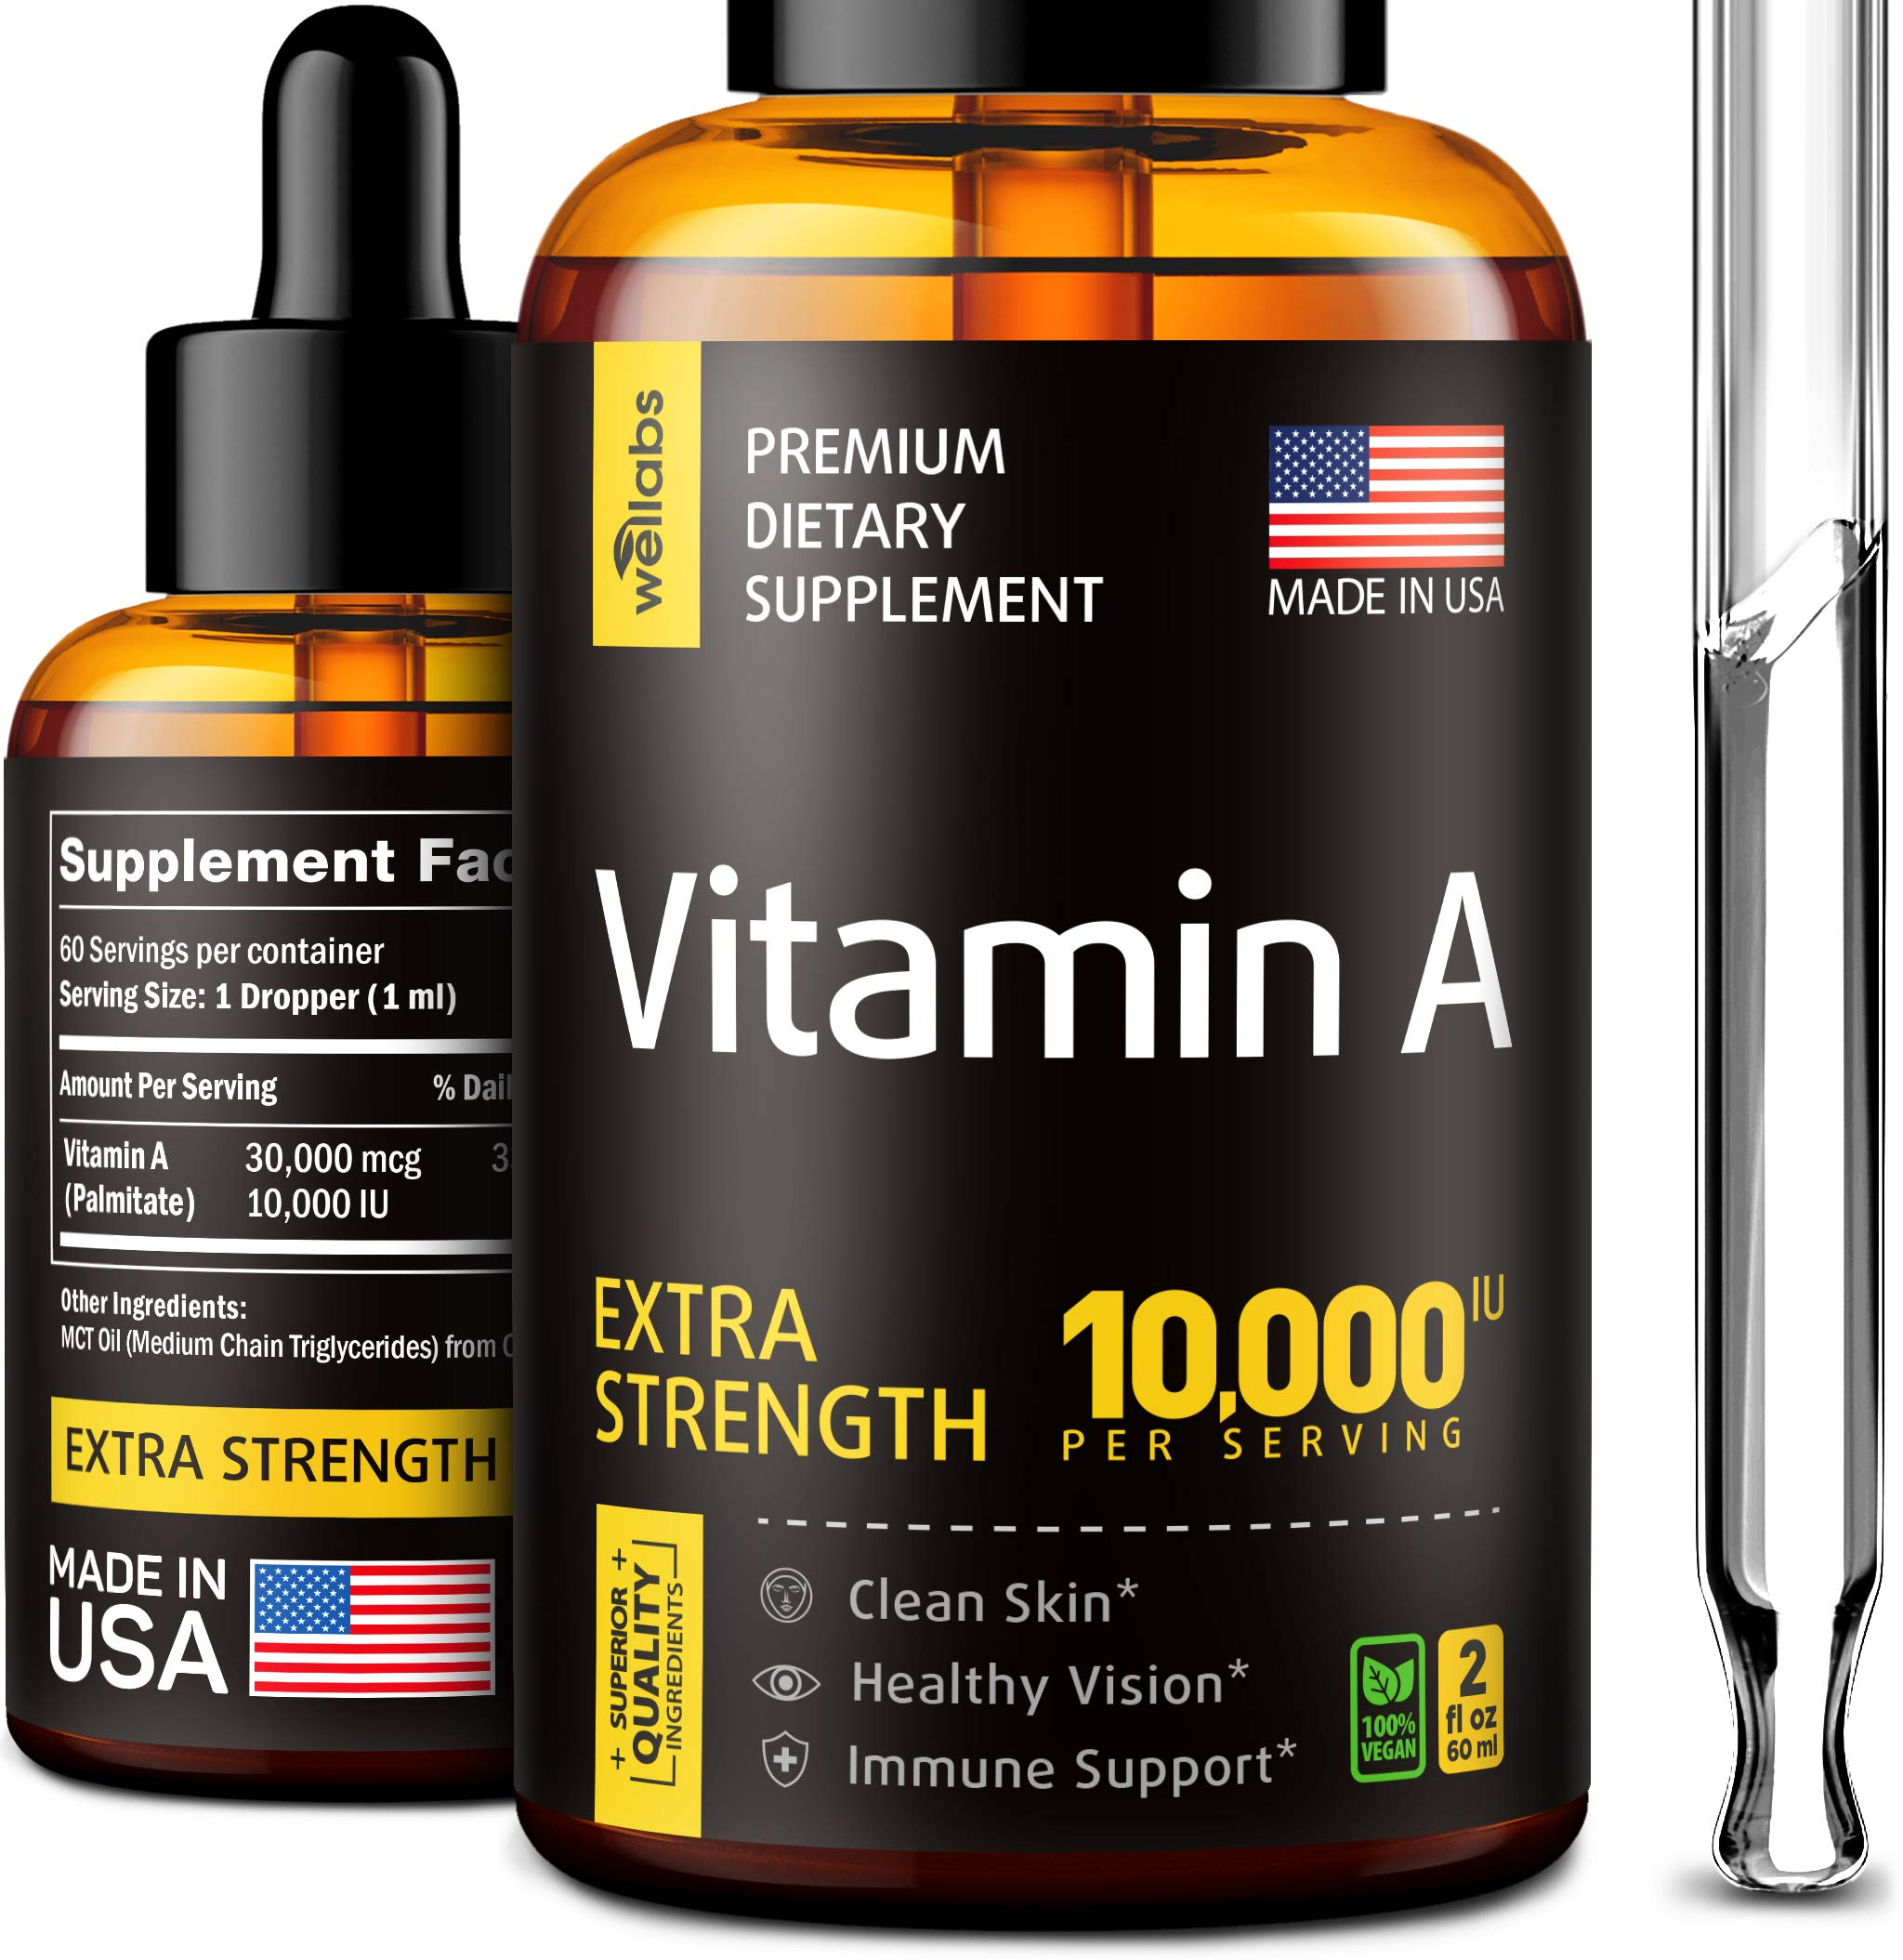 Vitamin A Supplement - Organic Vitamin A Palmitate - Made in The USA - Vitamin A Drops with MCT Oil - Natural Vitamin A 10000 IU for Immunity Support, Clean Skin & Healthy